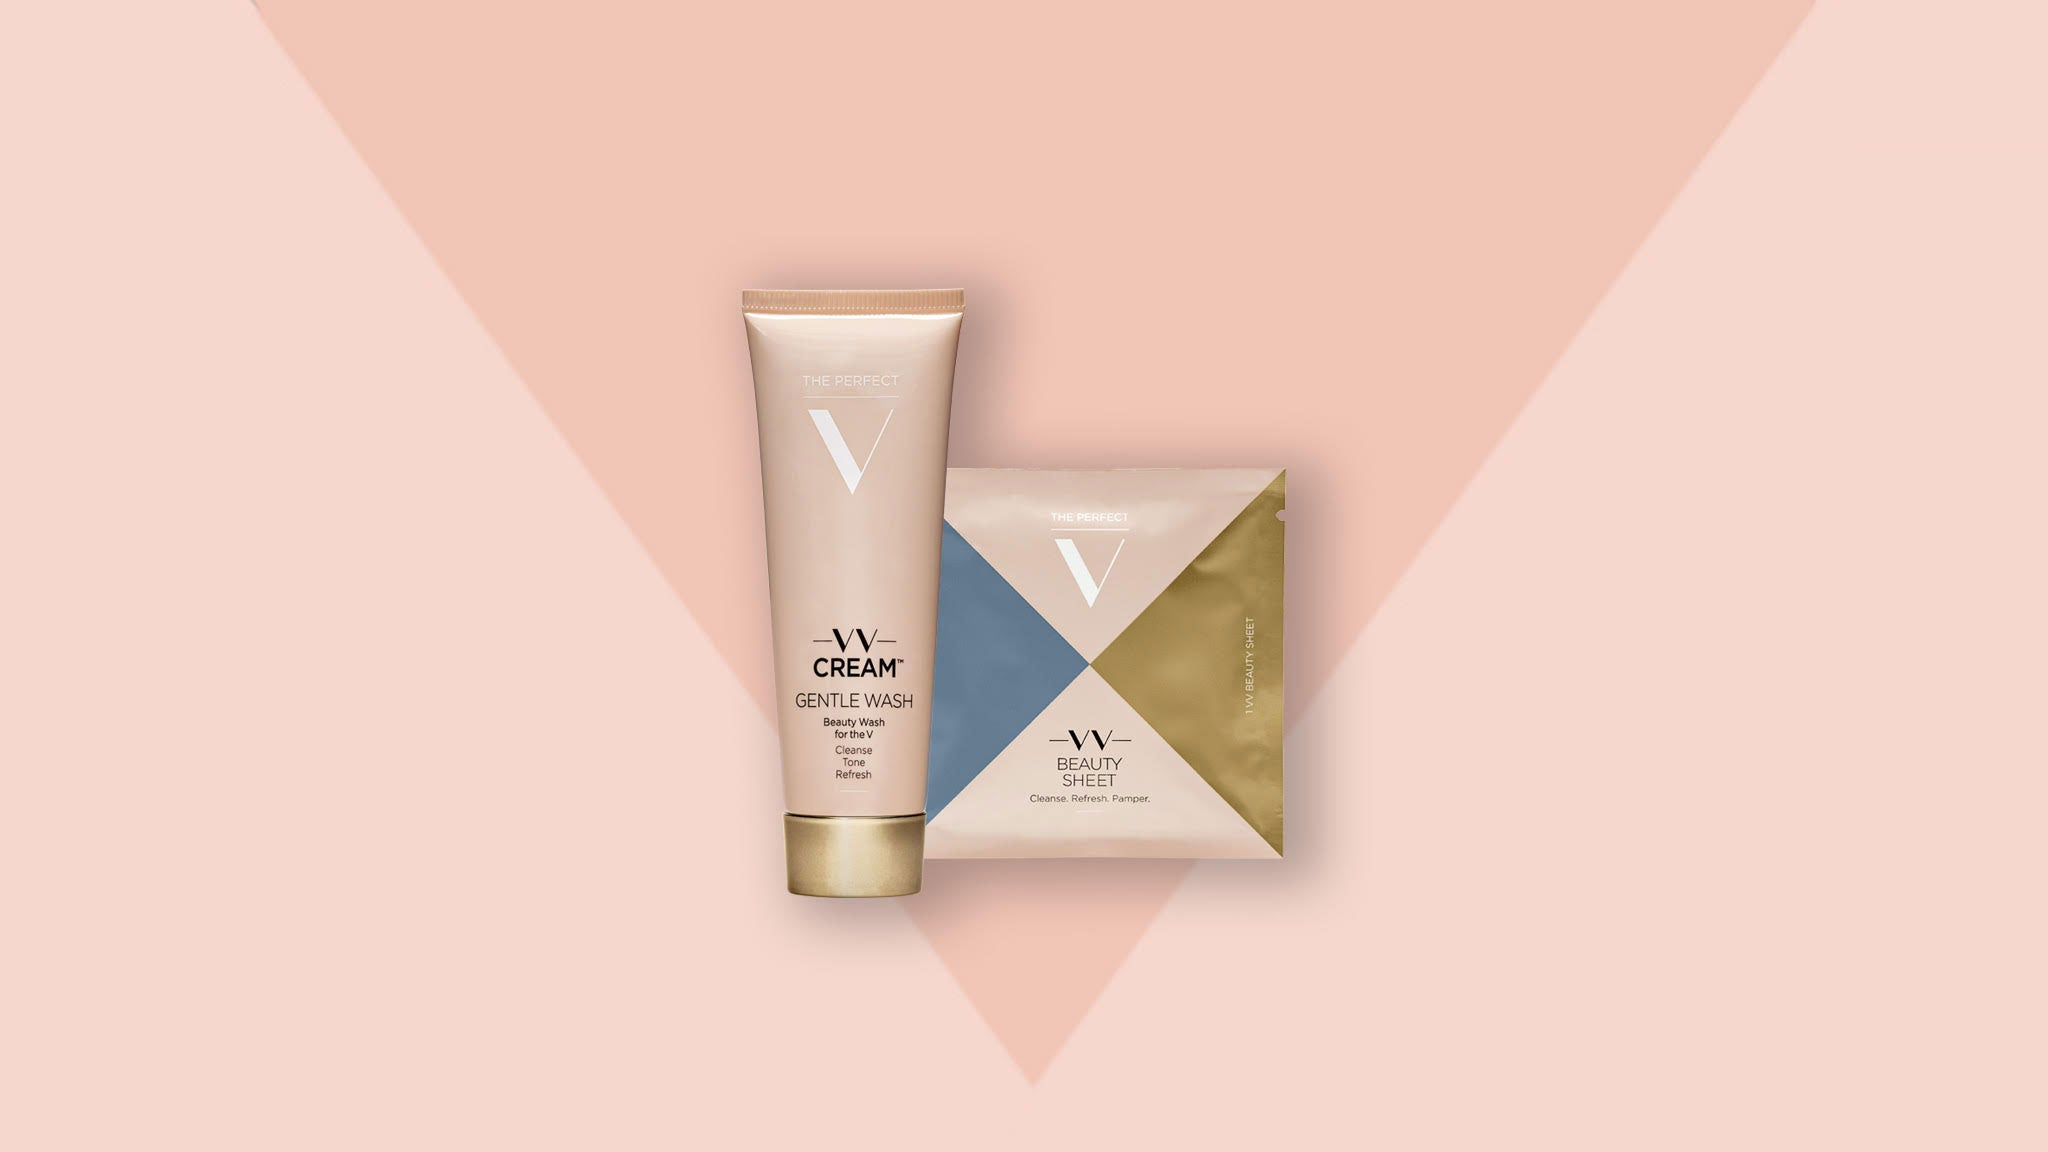 The Perfect V - Gentle Wash / Beauty Sheets